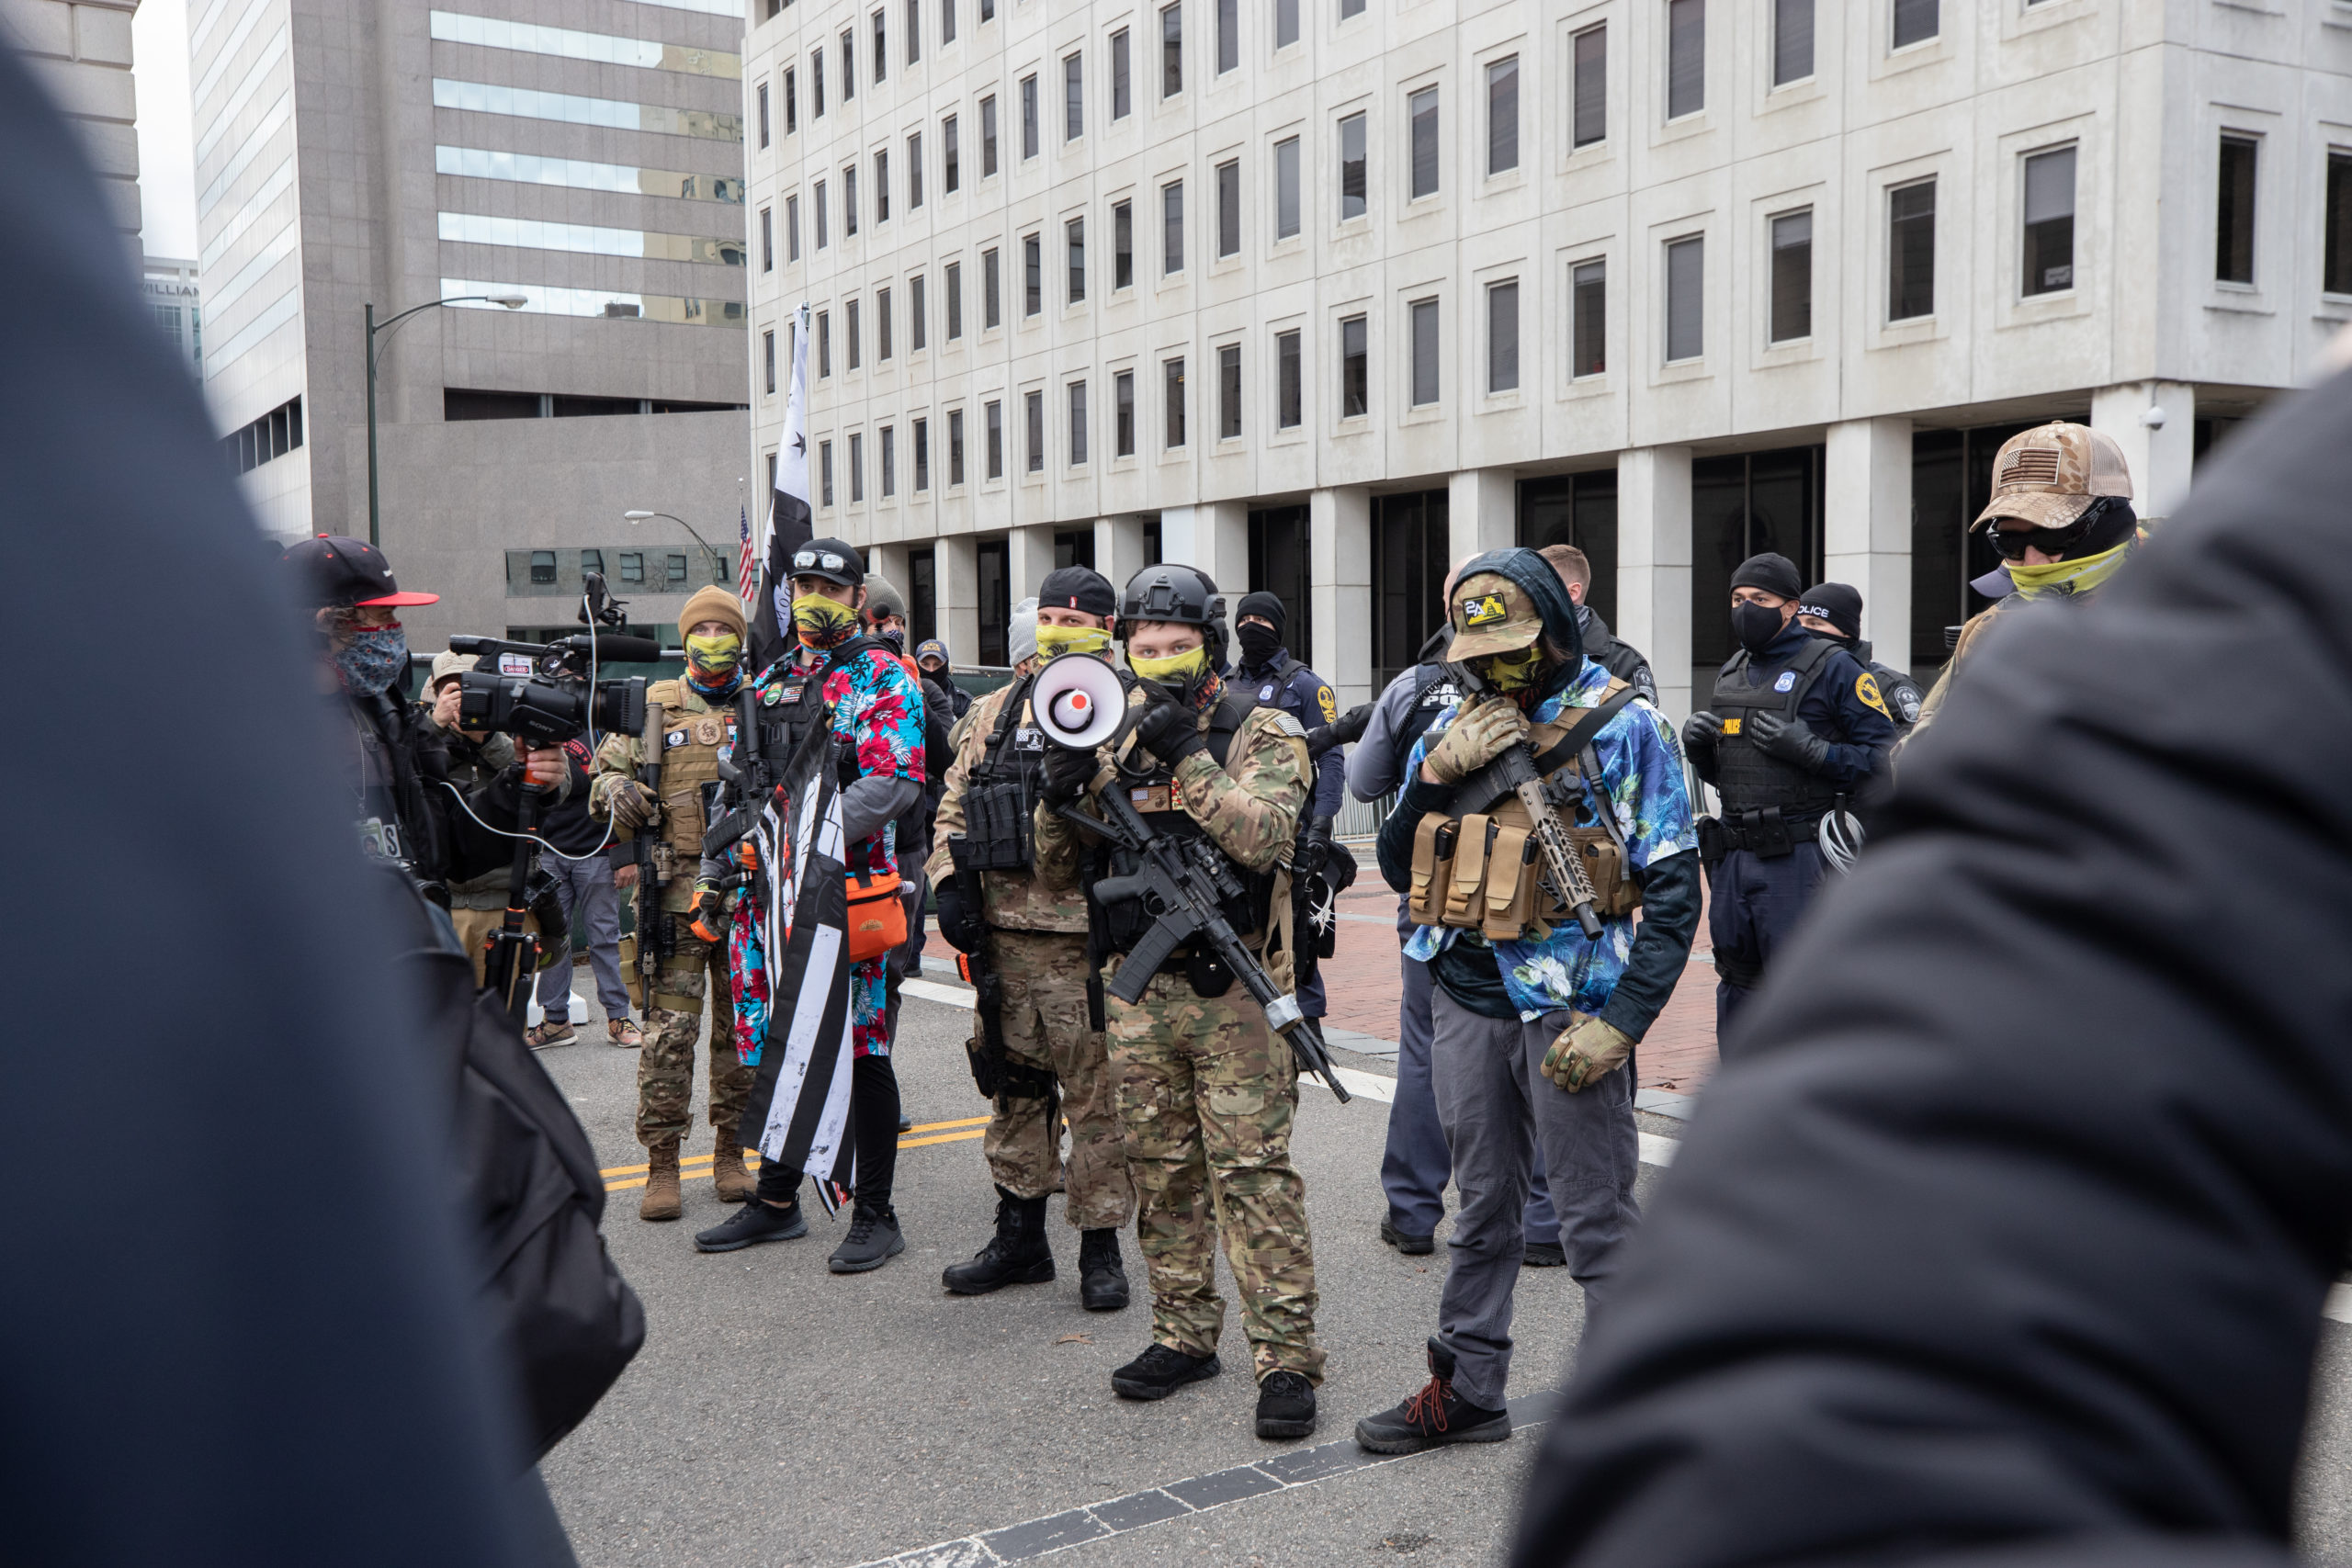 Self-described Boogaloo Boi leader Mike Dunn addressed a crowd in front of the state capitol in Richmond, Virginia on January 18, 2021. (Kaylee Greenlee - Daily Caller News Foundation)